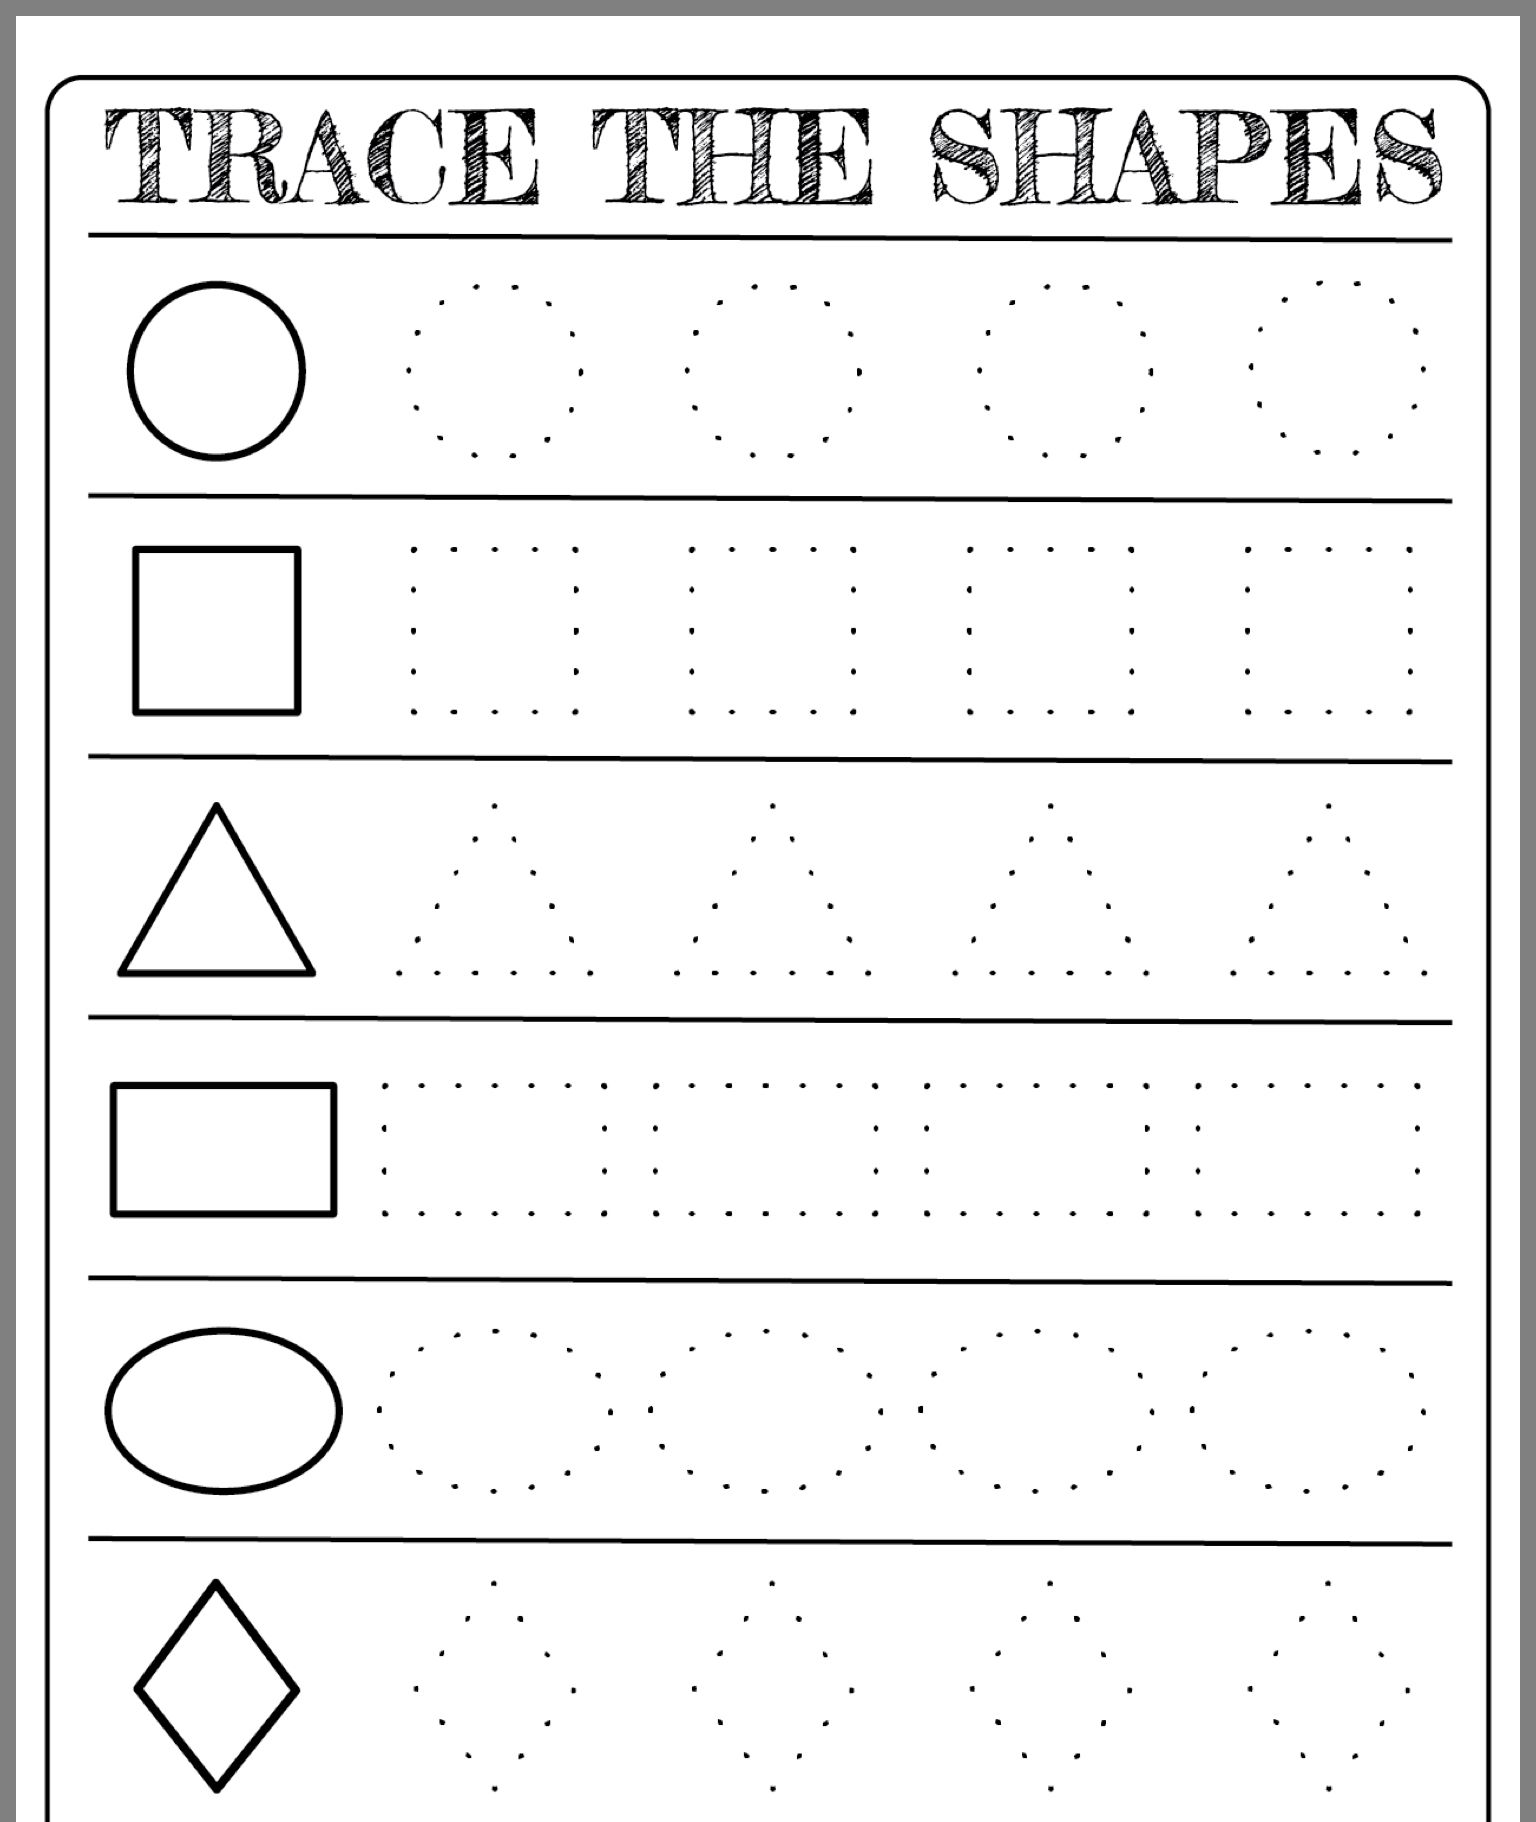 Free Printable Shapes Worksheets For Toddlers And Preschoolers Preschool Forms Free Preschool Worksheets Shape Activities Preschool